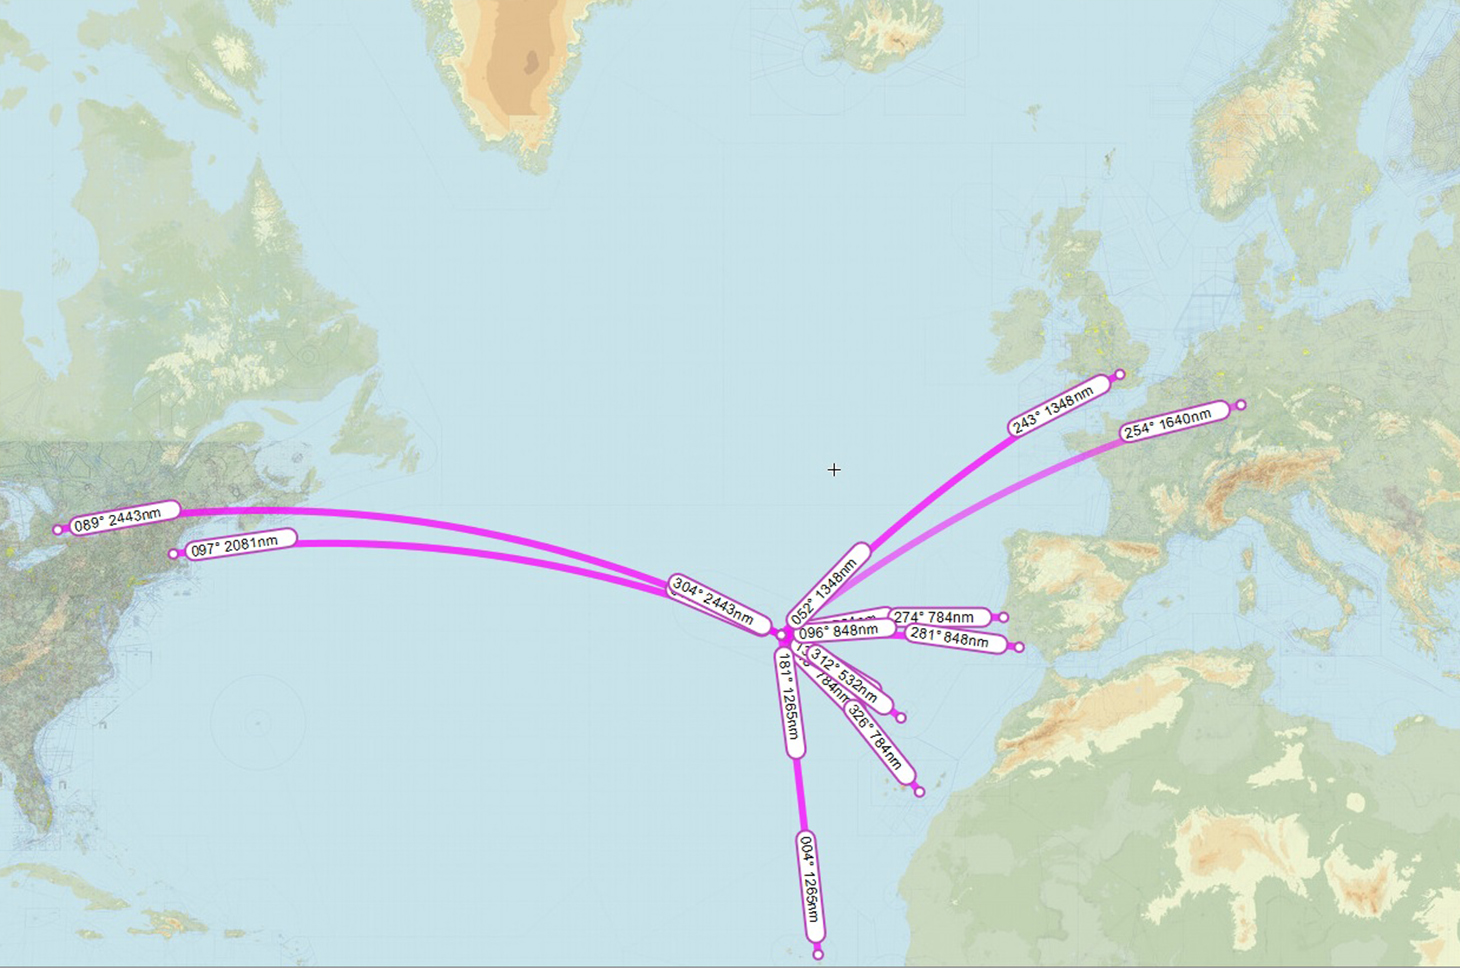 Strategic location of Azores for trans-Atlantic flights between Europe and Americas // Source: Skyvector